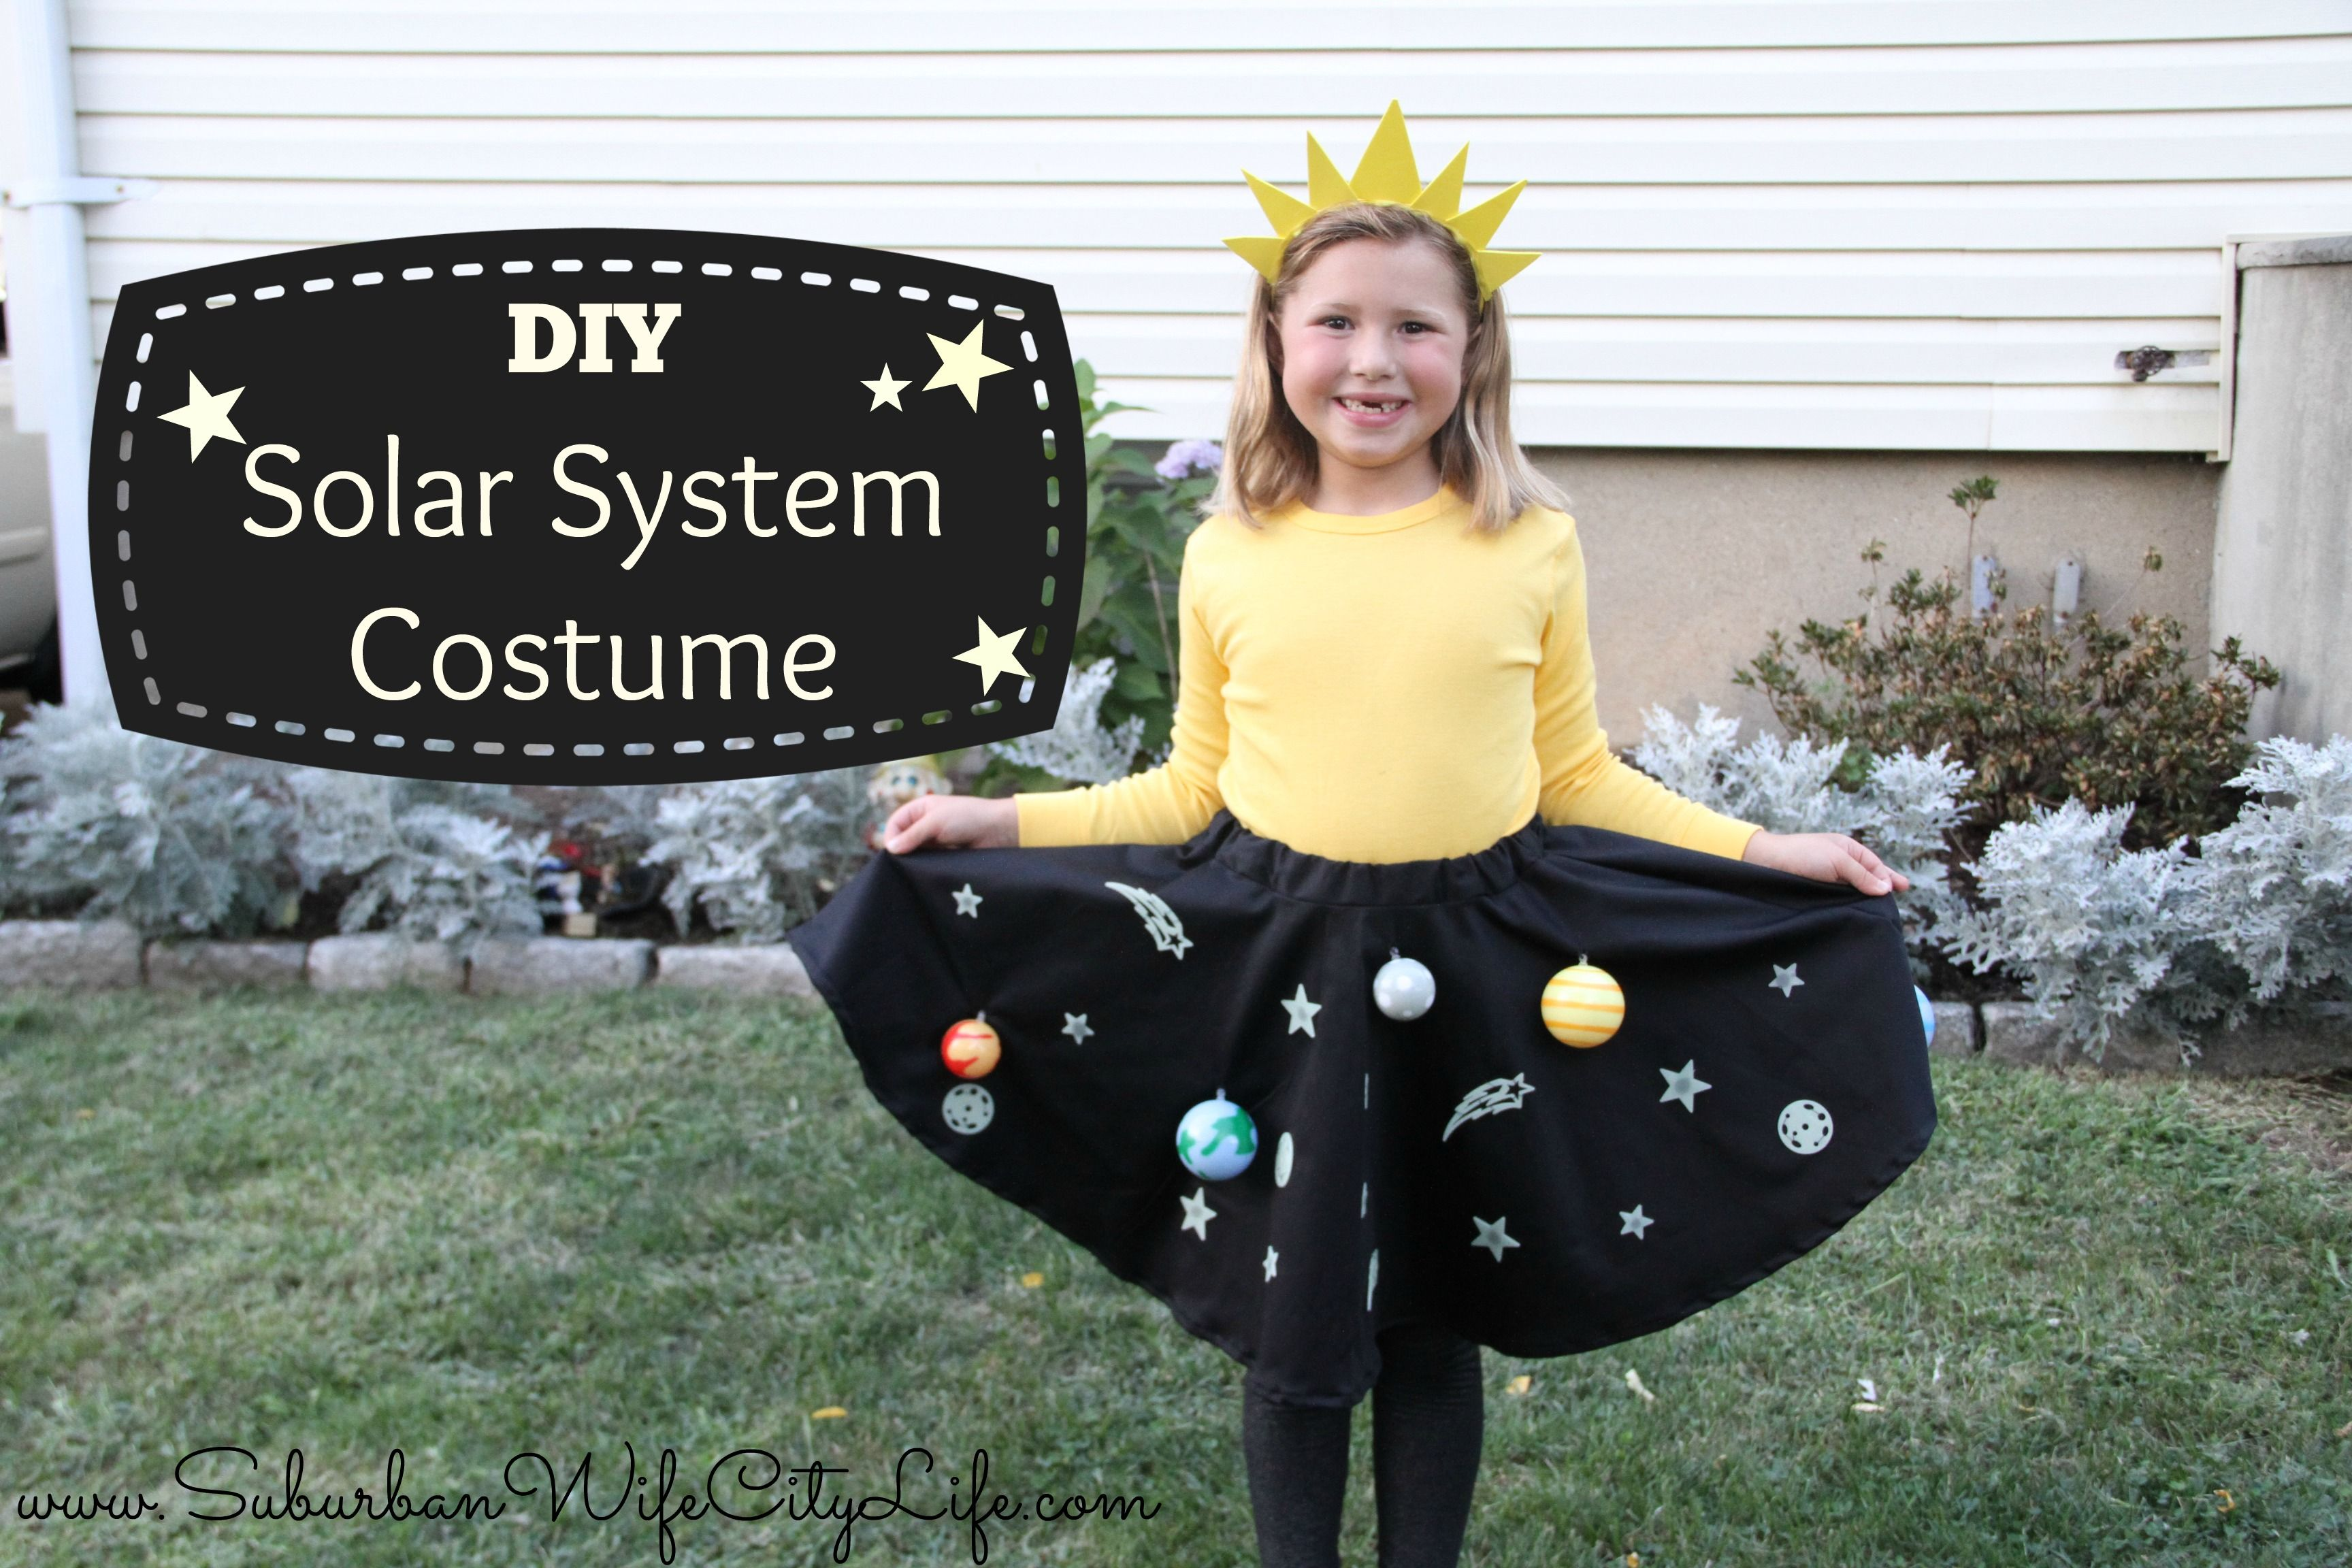 asteroid costume for kids - HD1920×1080